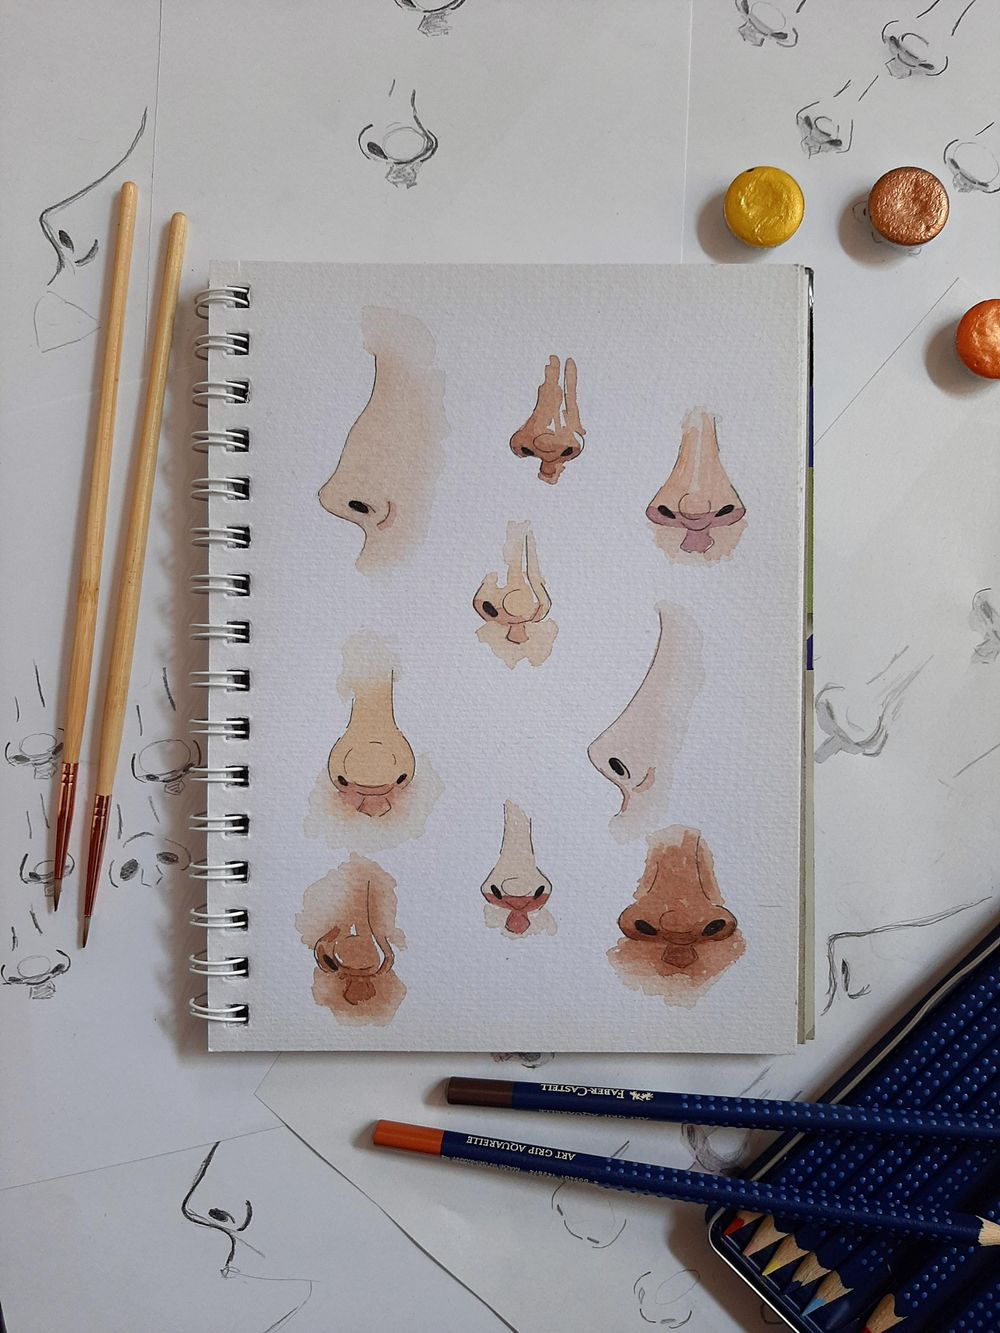 Easy noses - image 1 - student project